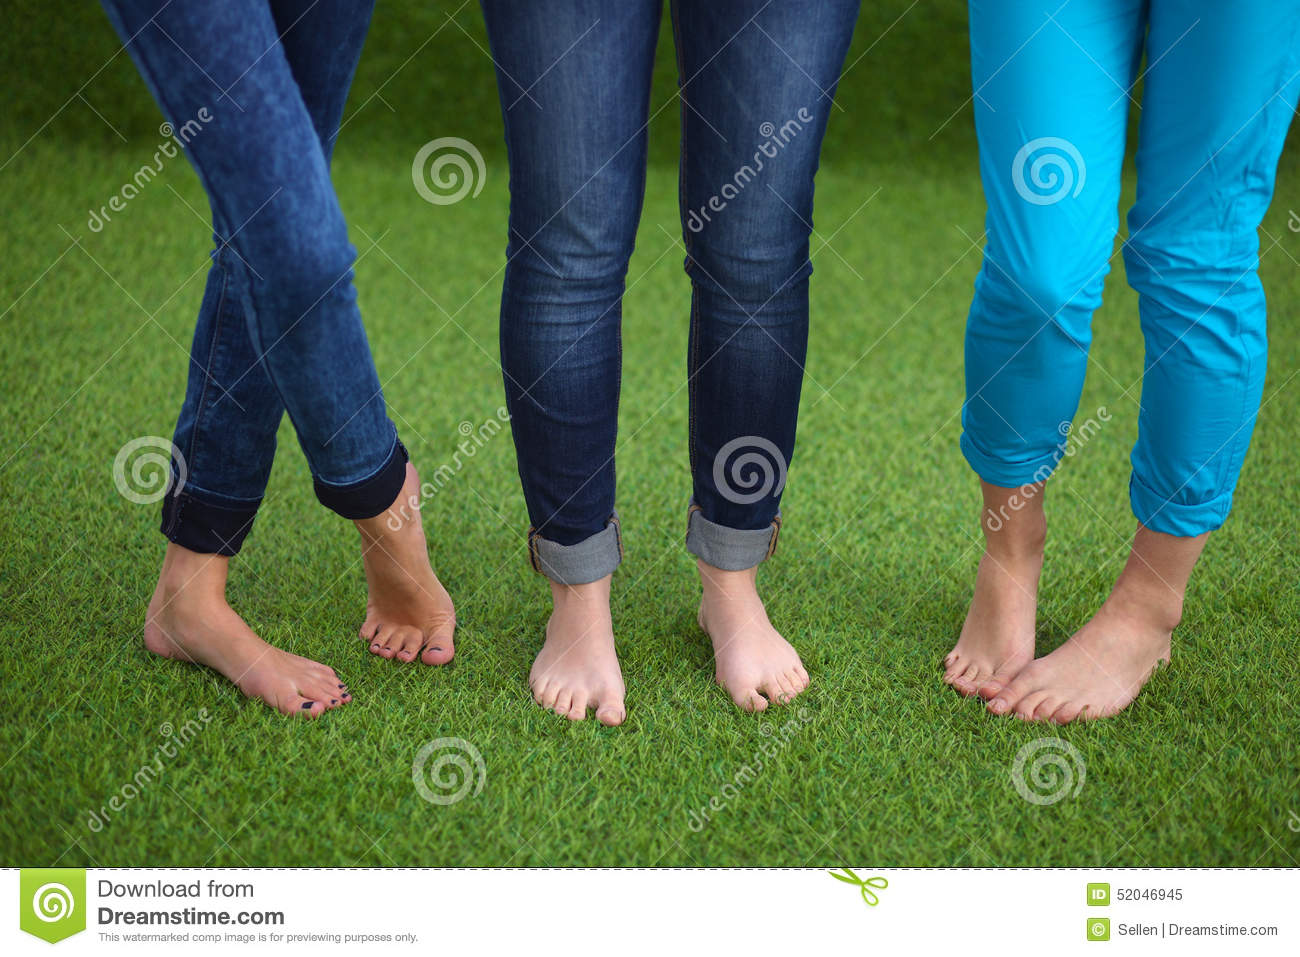 three women with naked feet standing in grass stock image - image of